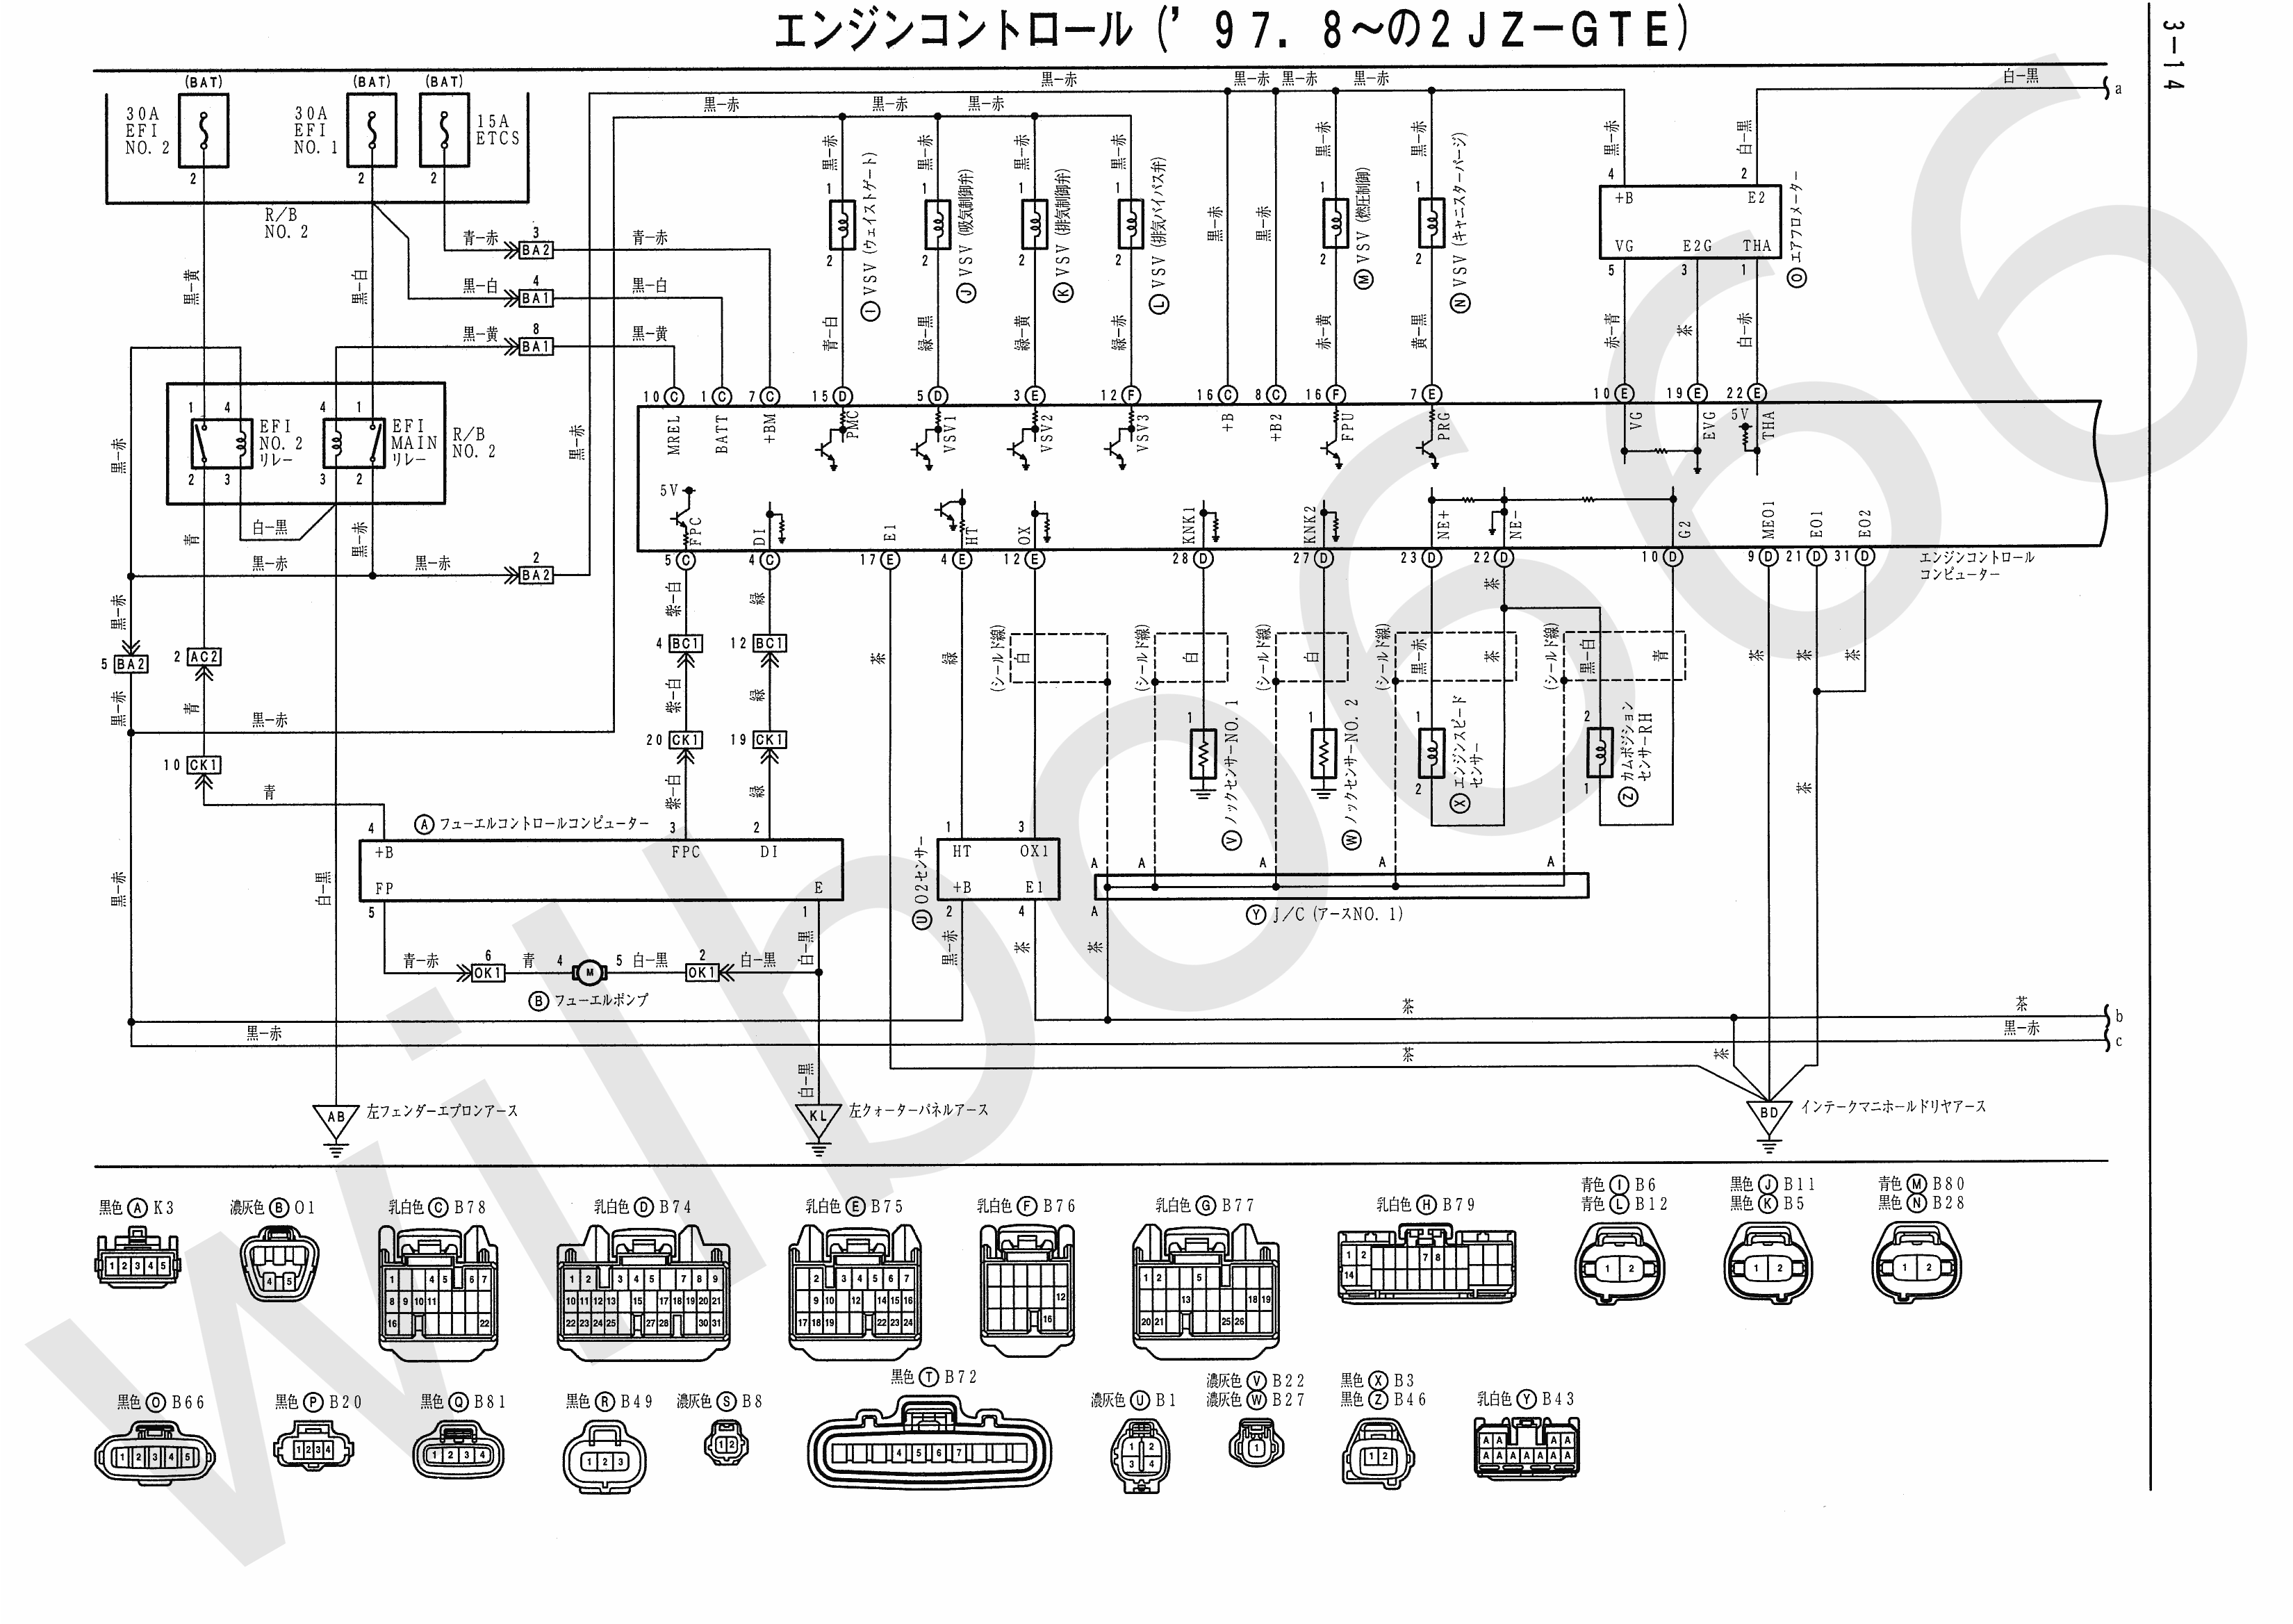 JZA80 Electrical Wiring Diagram 6742505 3 14 wilbo666 2jz gte vvti jza80 supra engine wiring 2jzgte wiring diagram at reclaimingppi.co